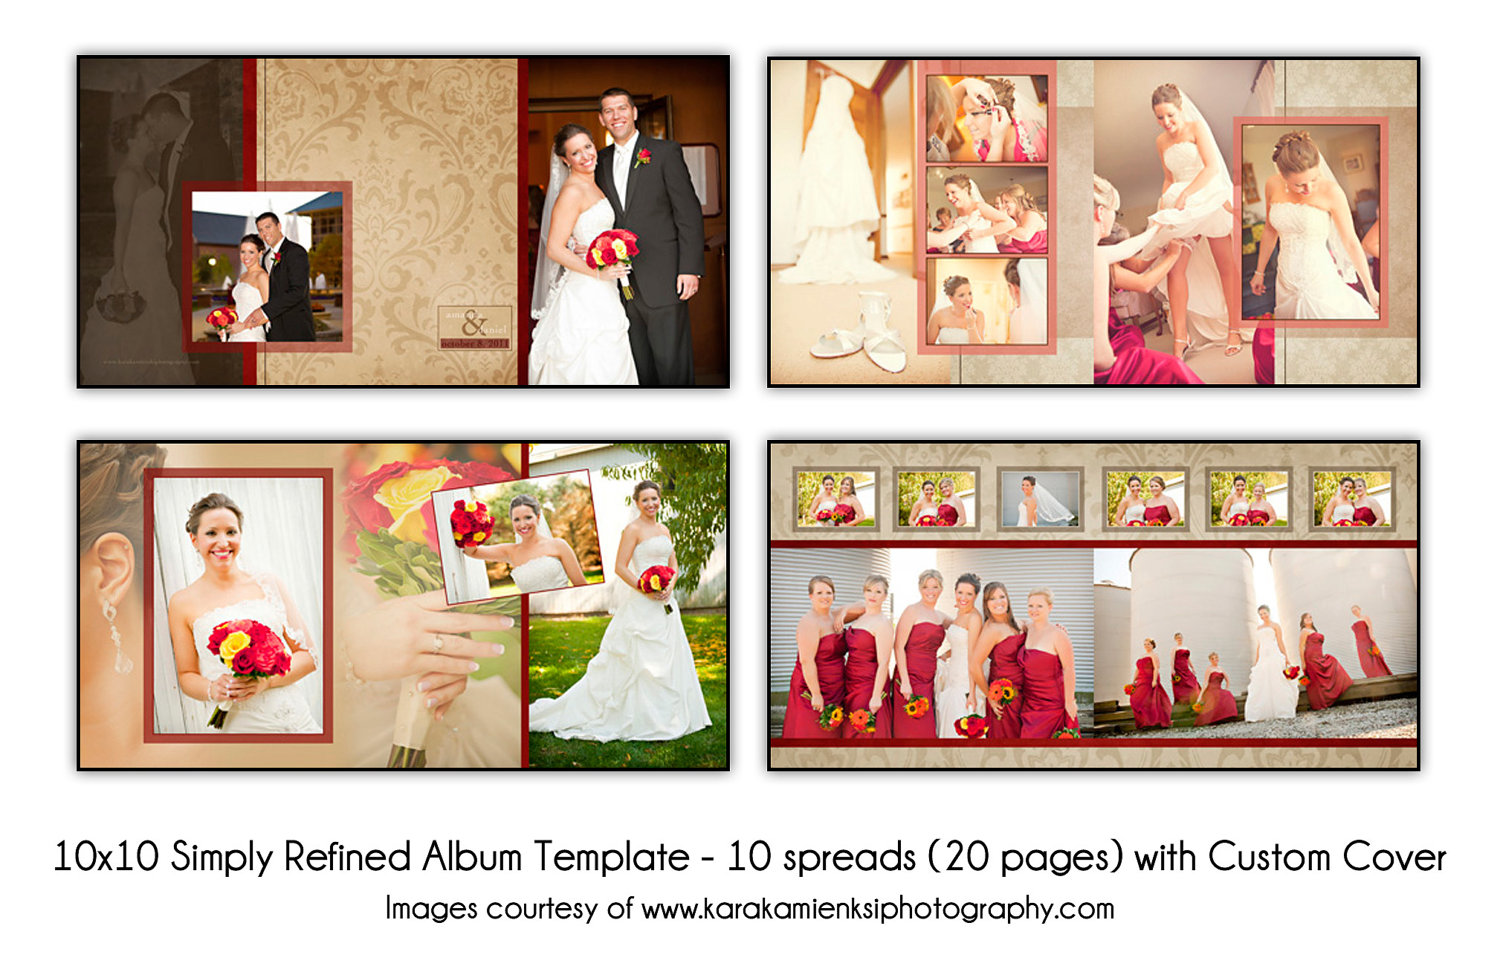 15 free wedding album layout templates images wedding for Wedding photo album templates in photoshop